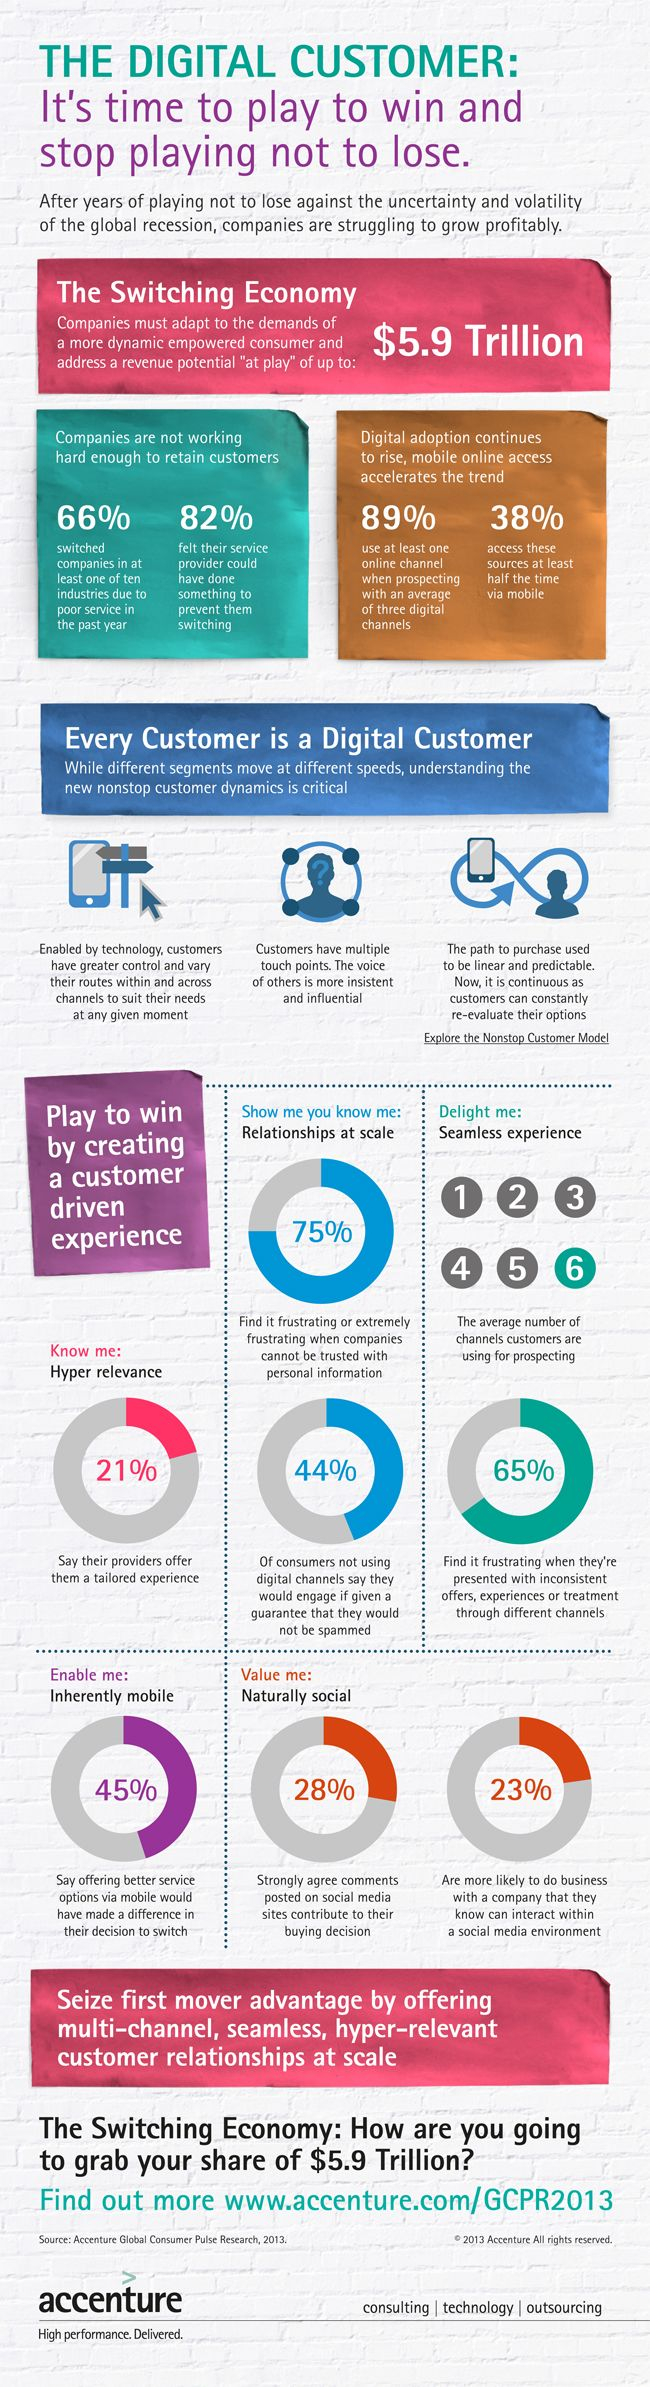 The Digital Customer: It's Time to Play to Win - The Global Consumer Pulse Research 2013